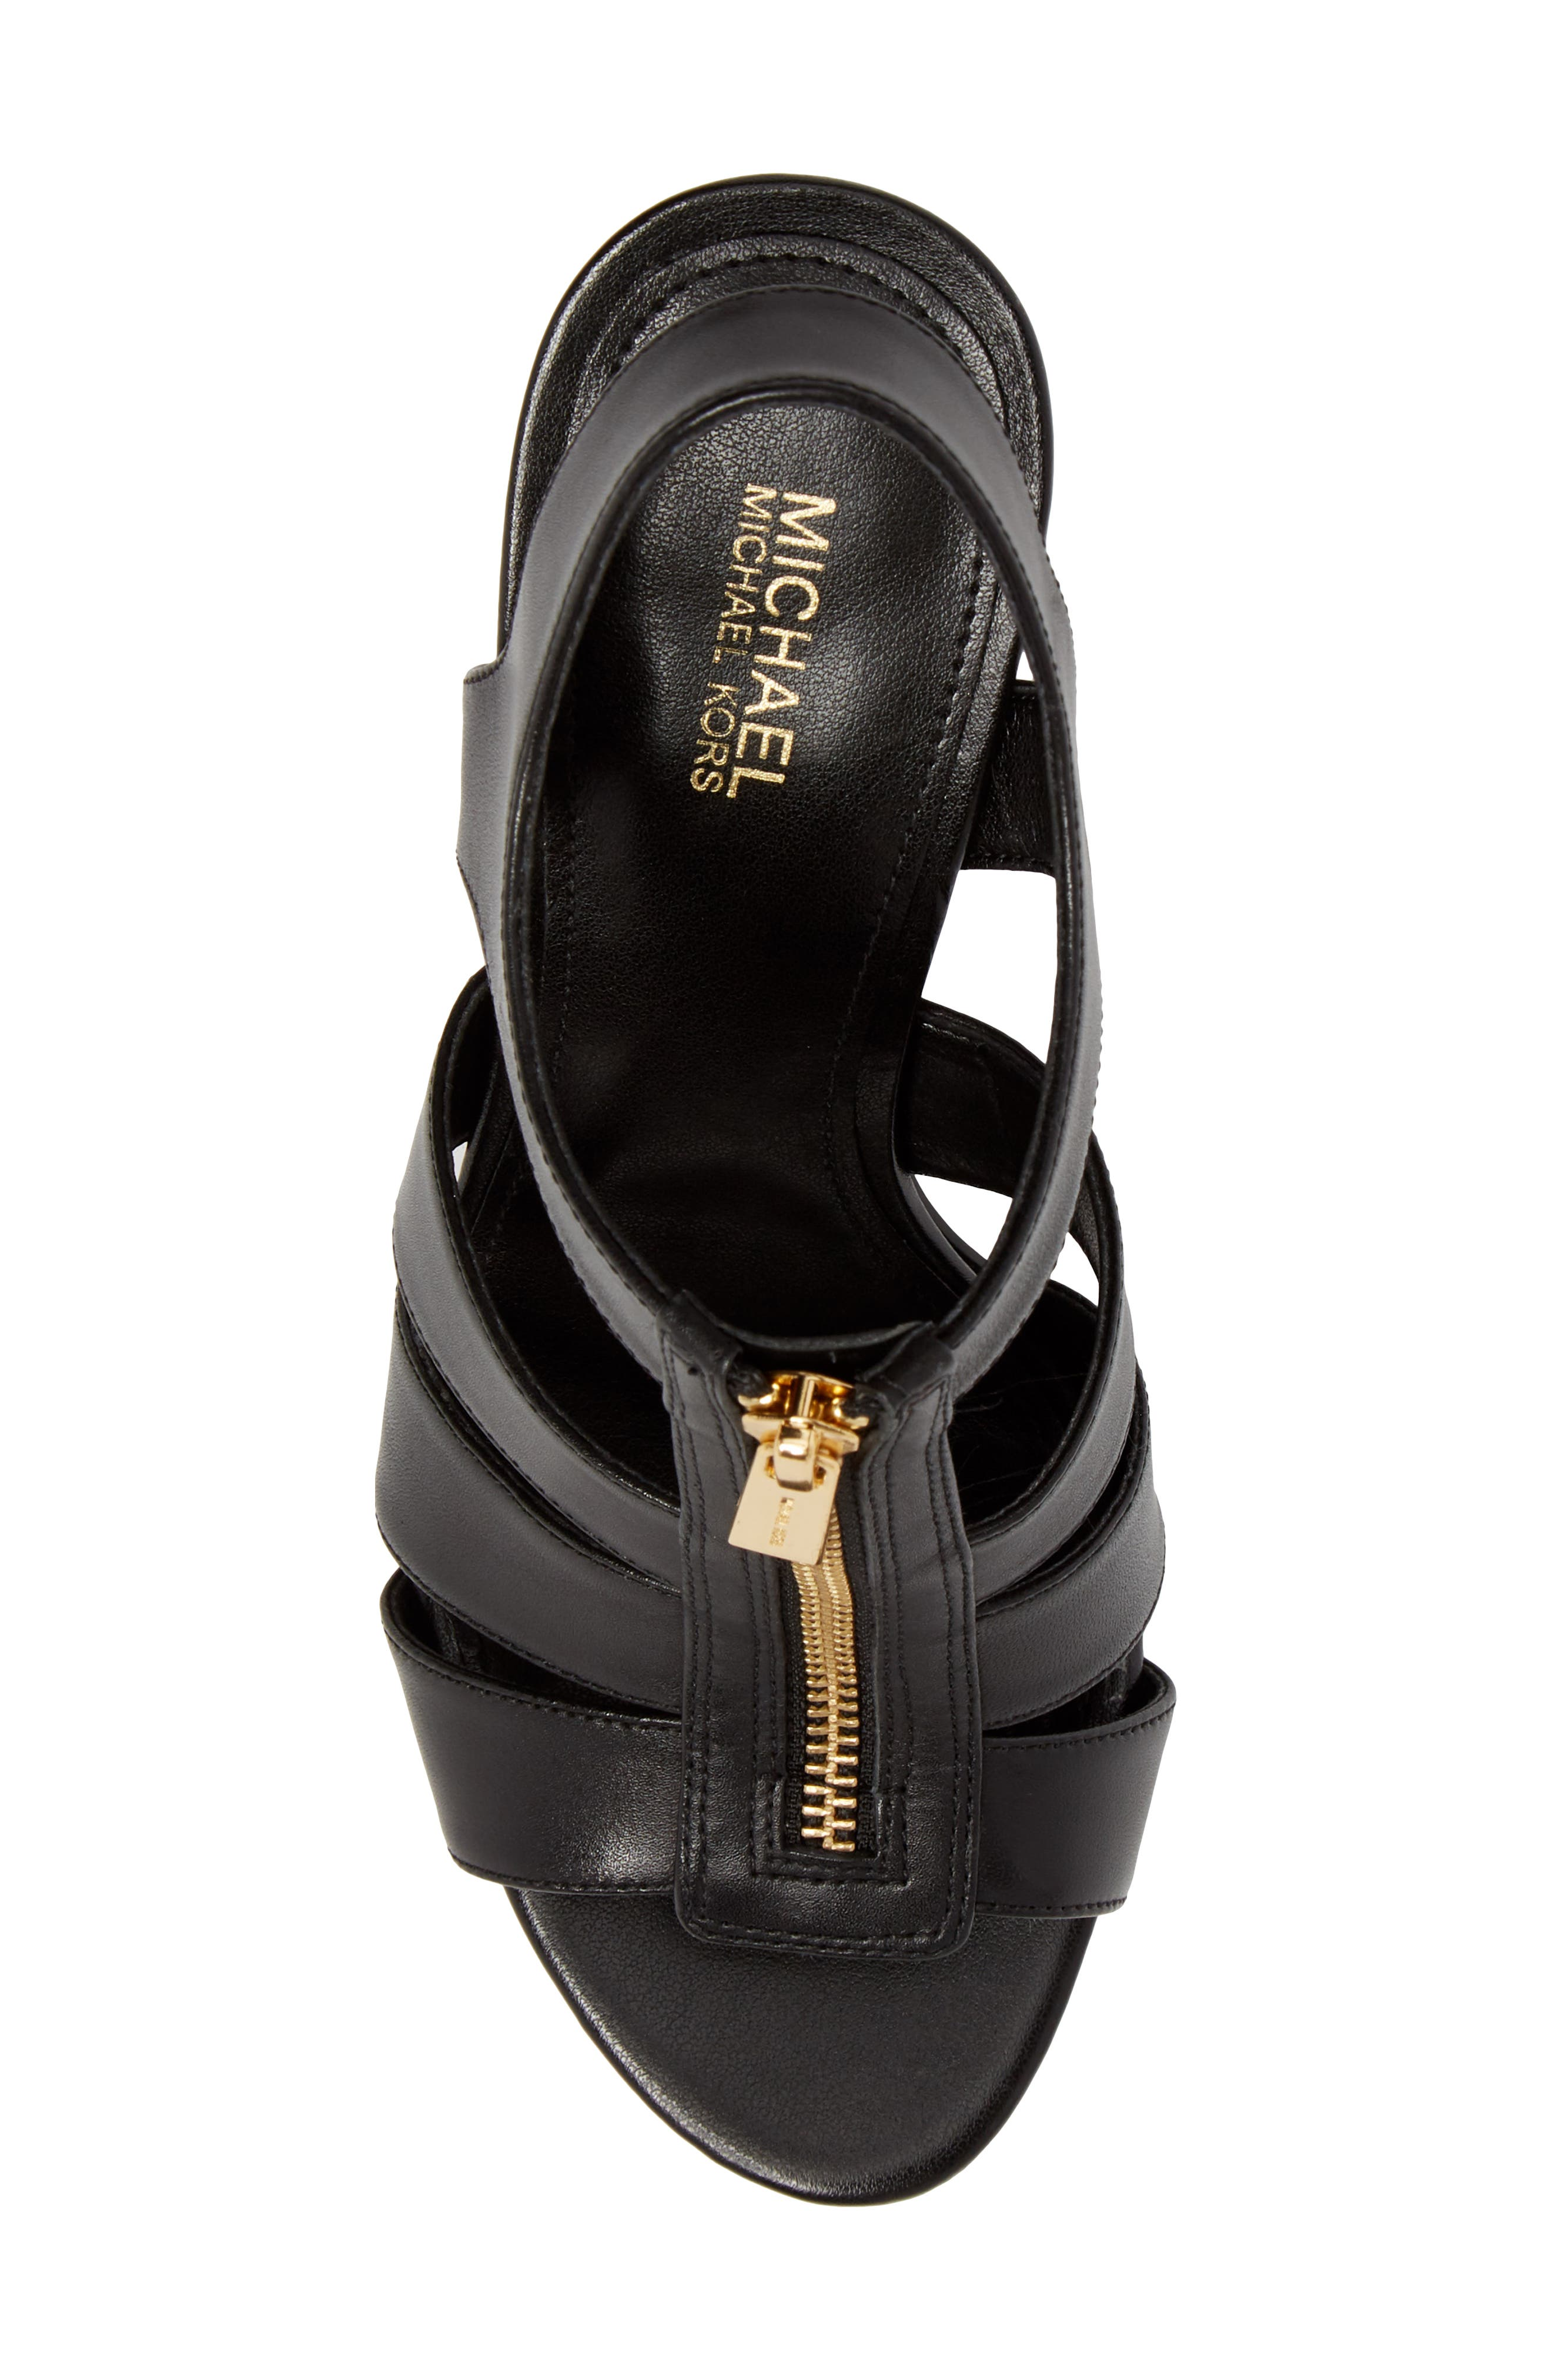 Damita Sandal,                             Alternate thumbnail 5, color,                             001